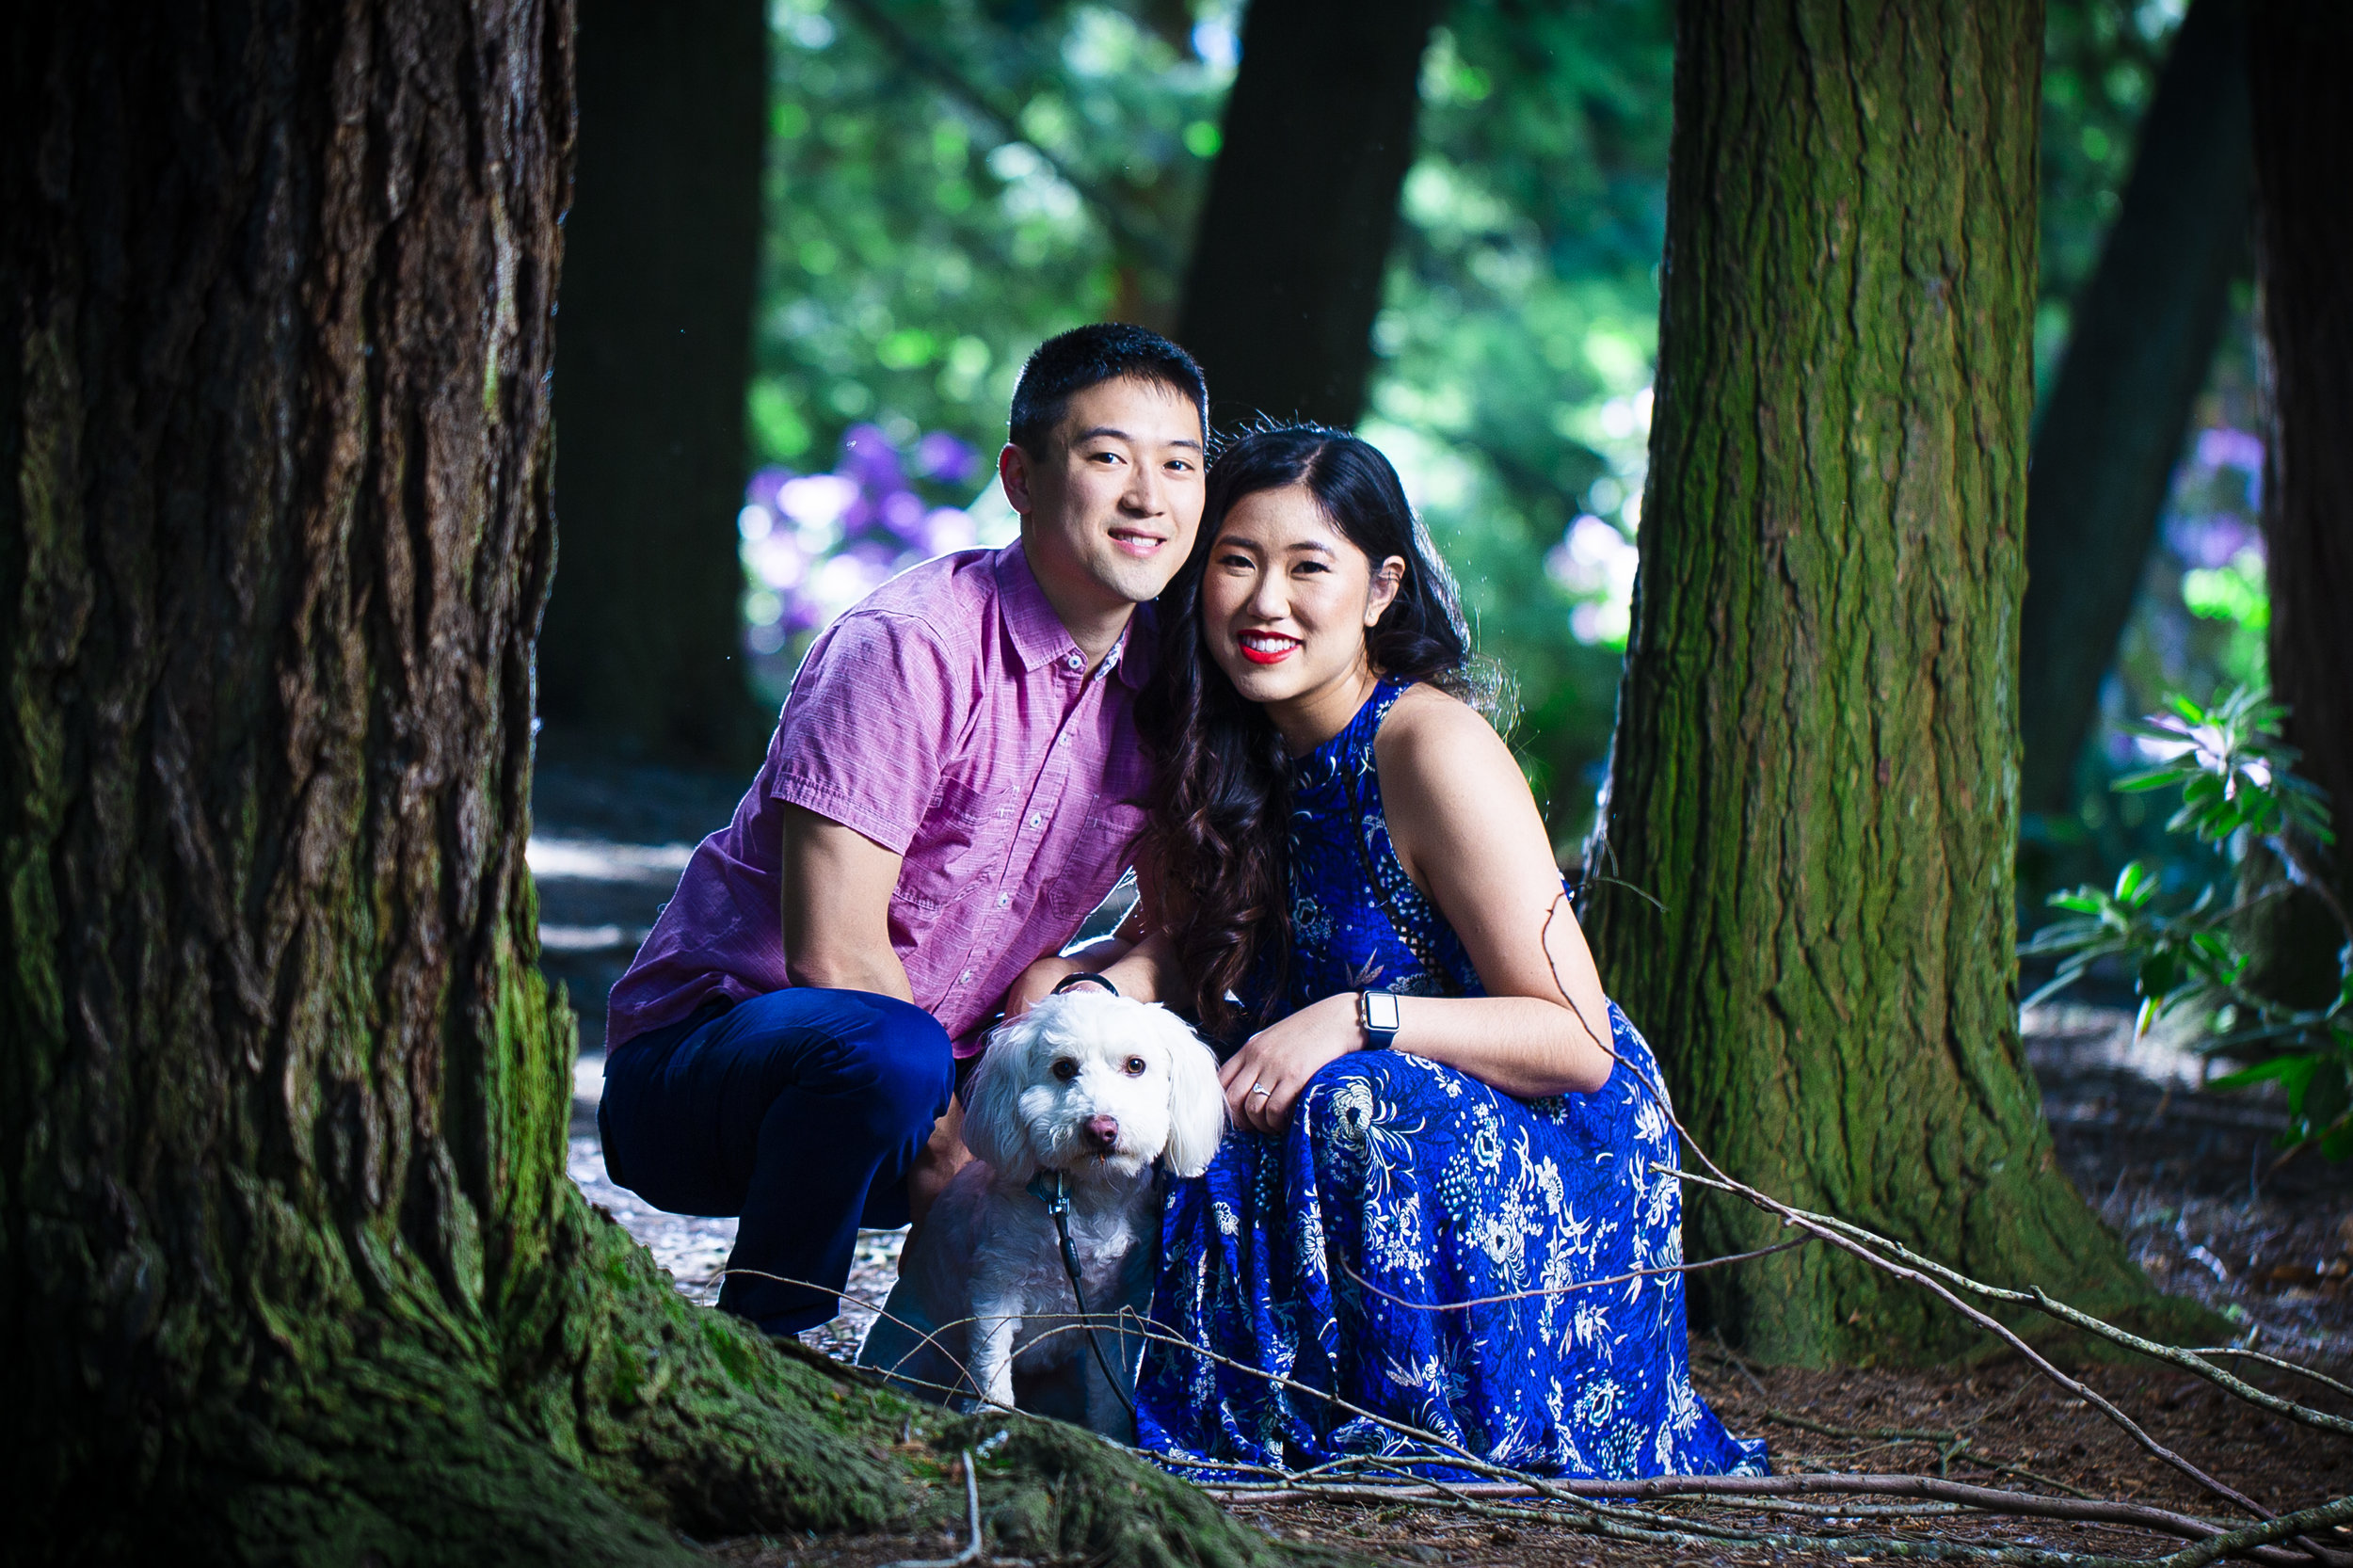 314A5739+Giovanni The Photographer+Best Boston Engagement Photography+Arnold Arboretum.jpg